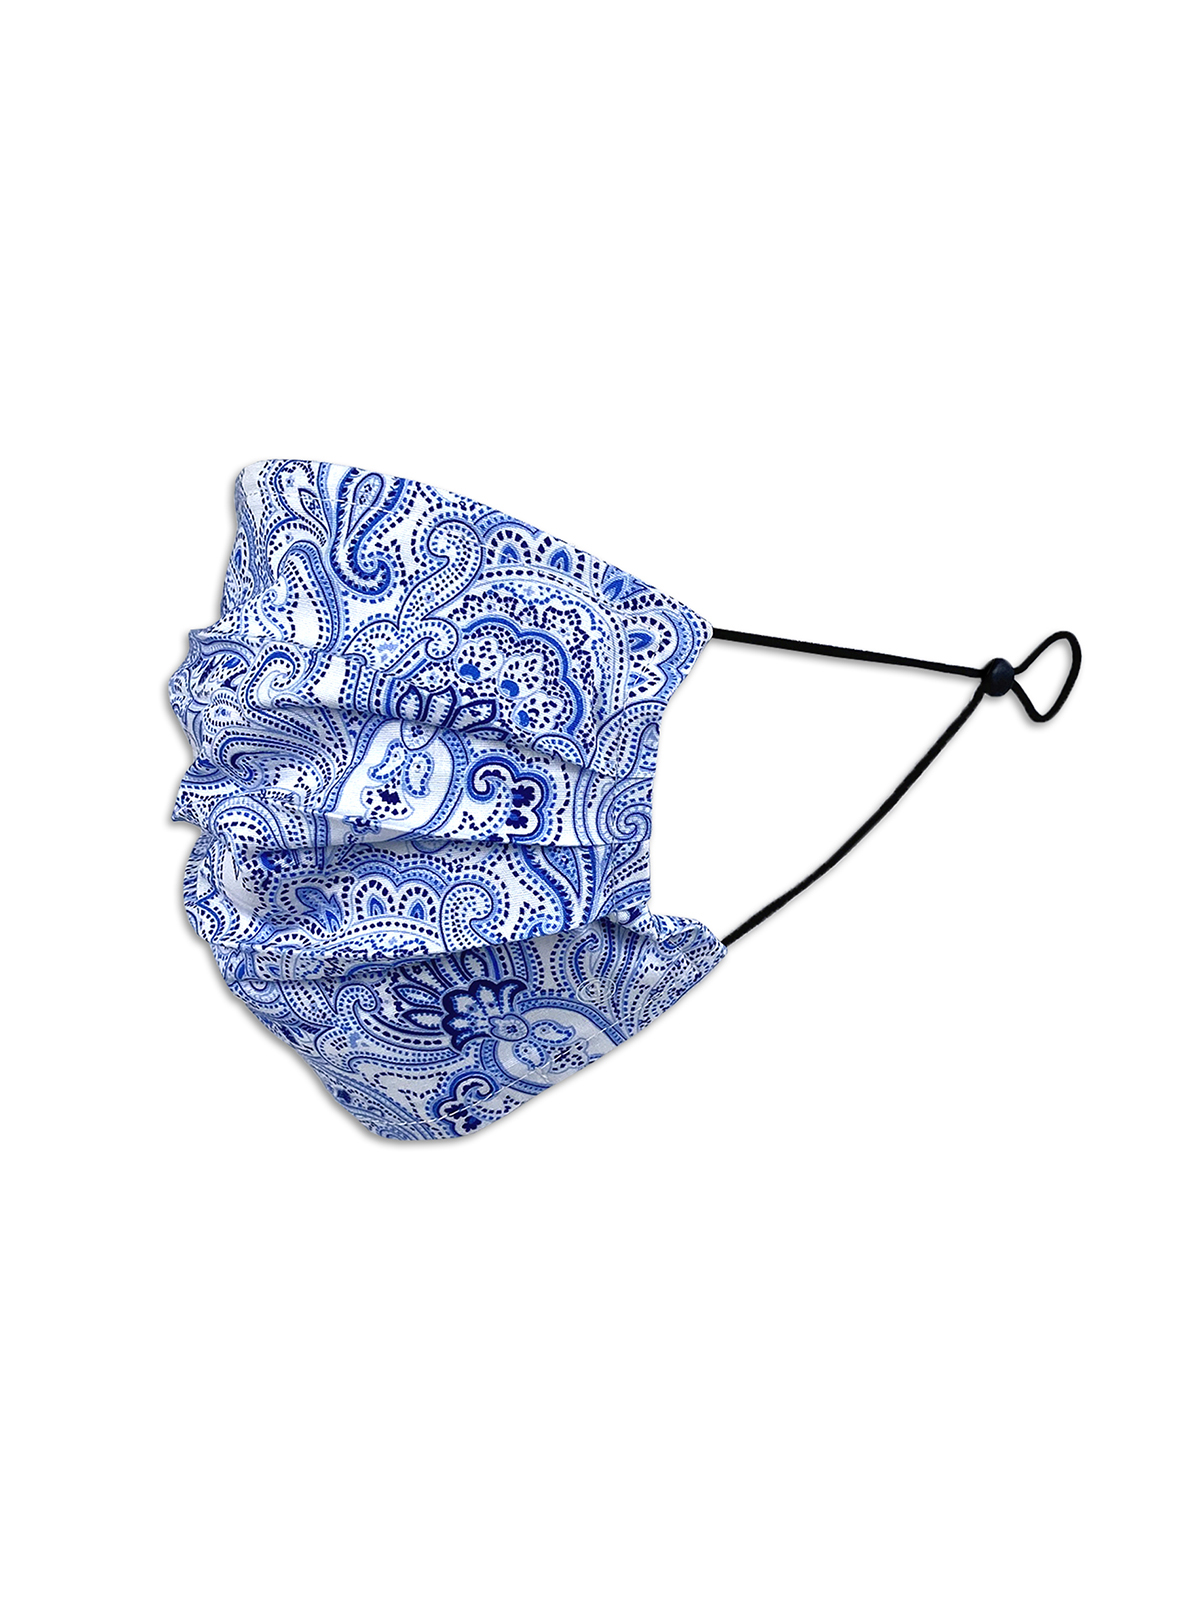 PAISLEY PLEATED MASK 1-PACK